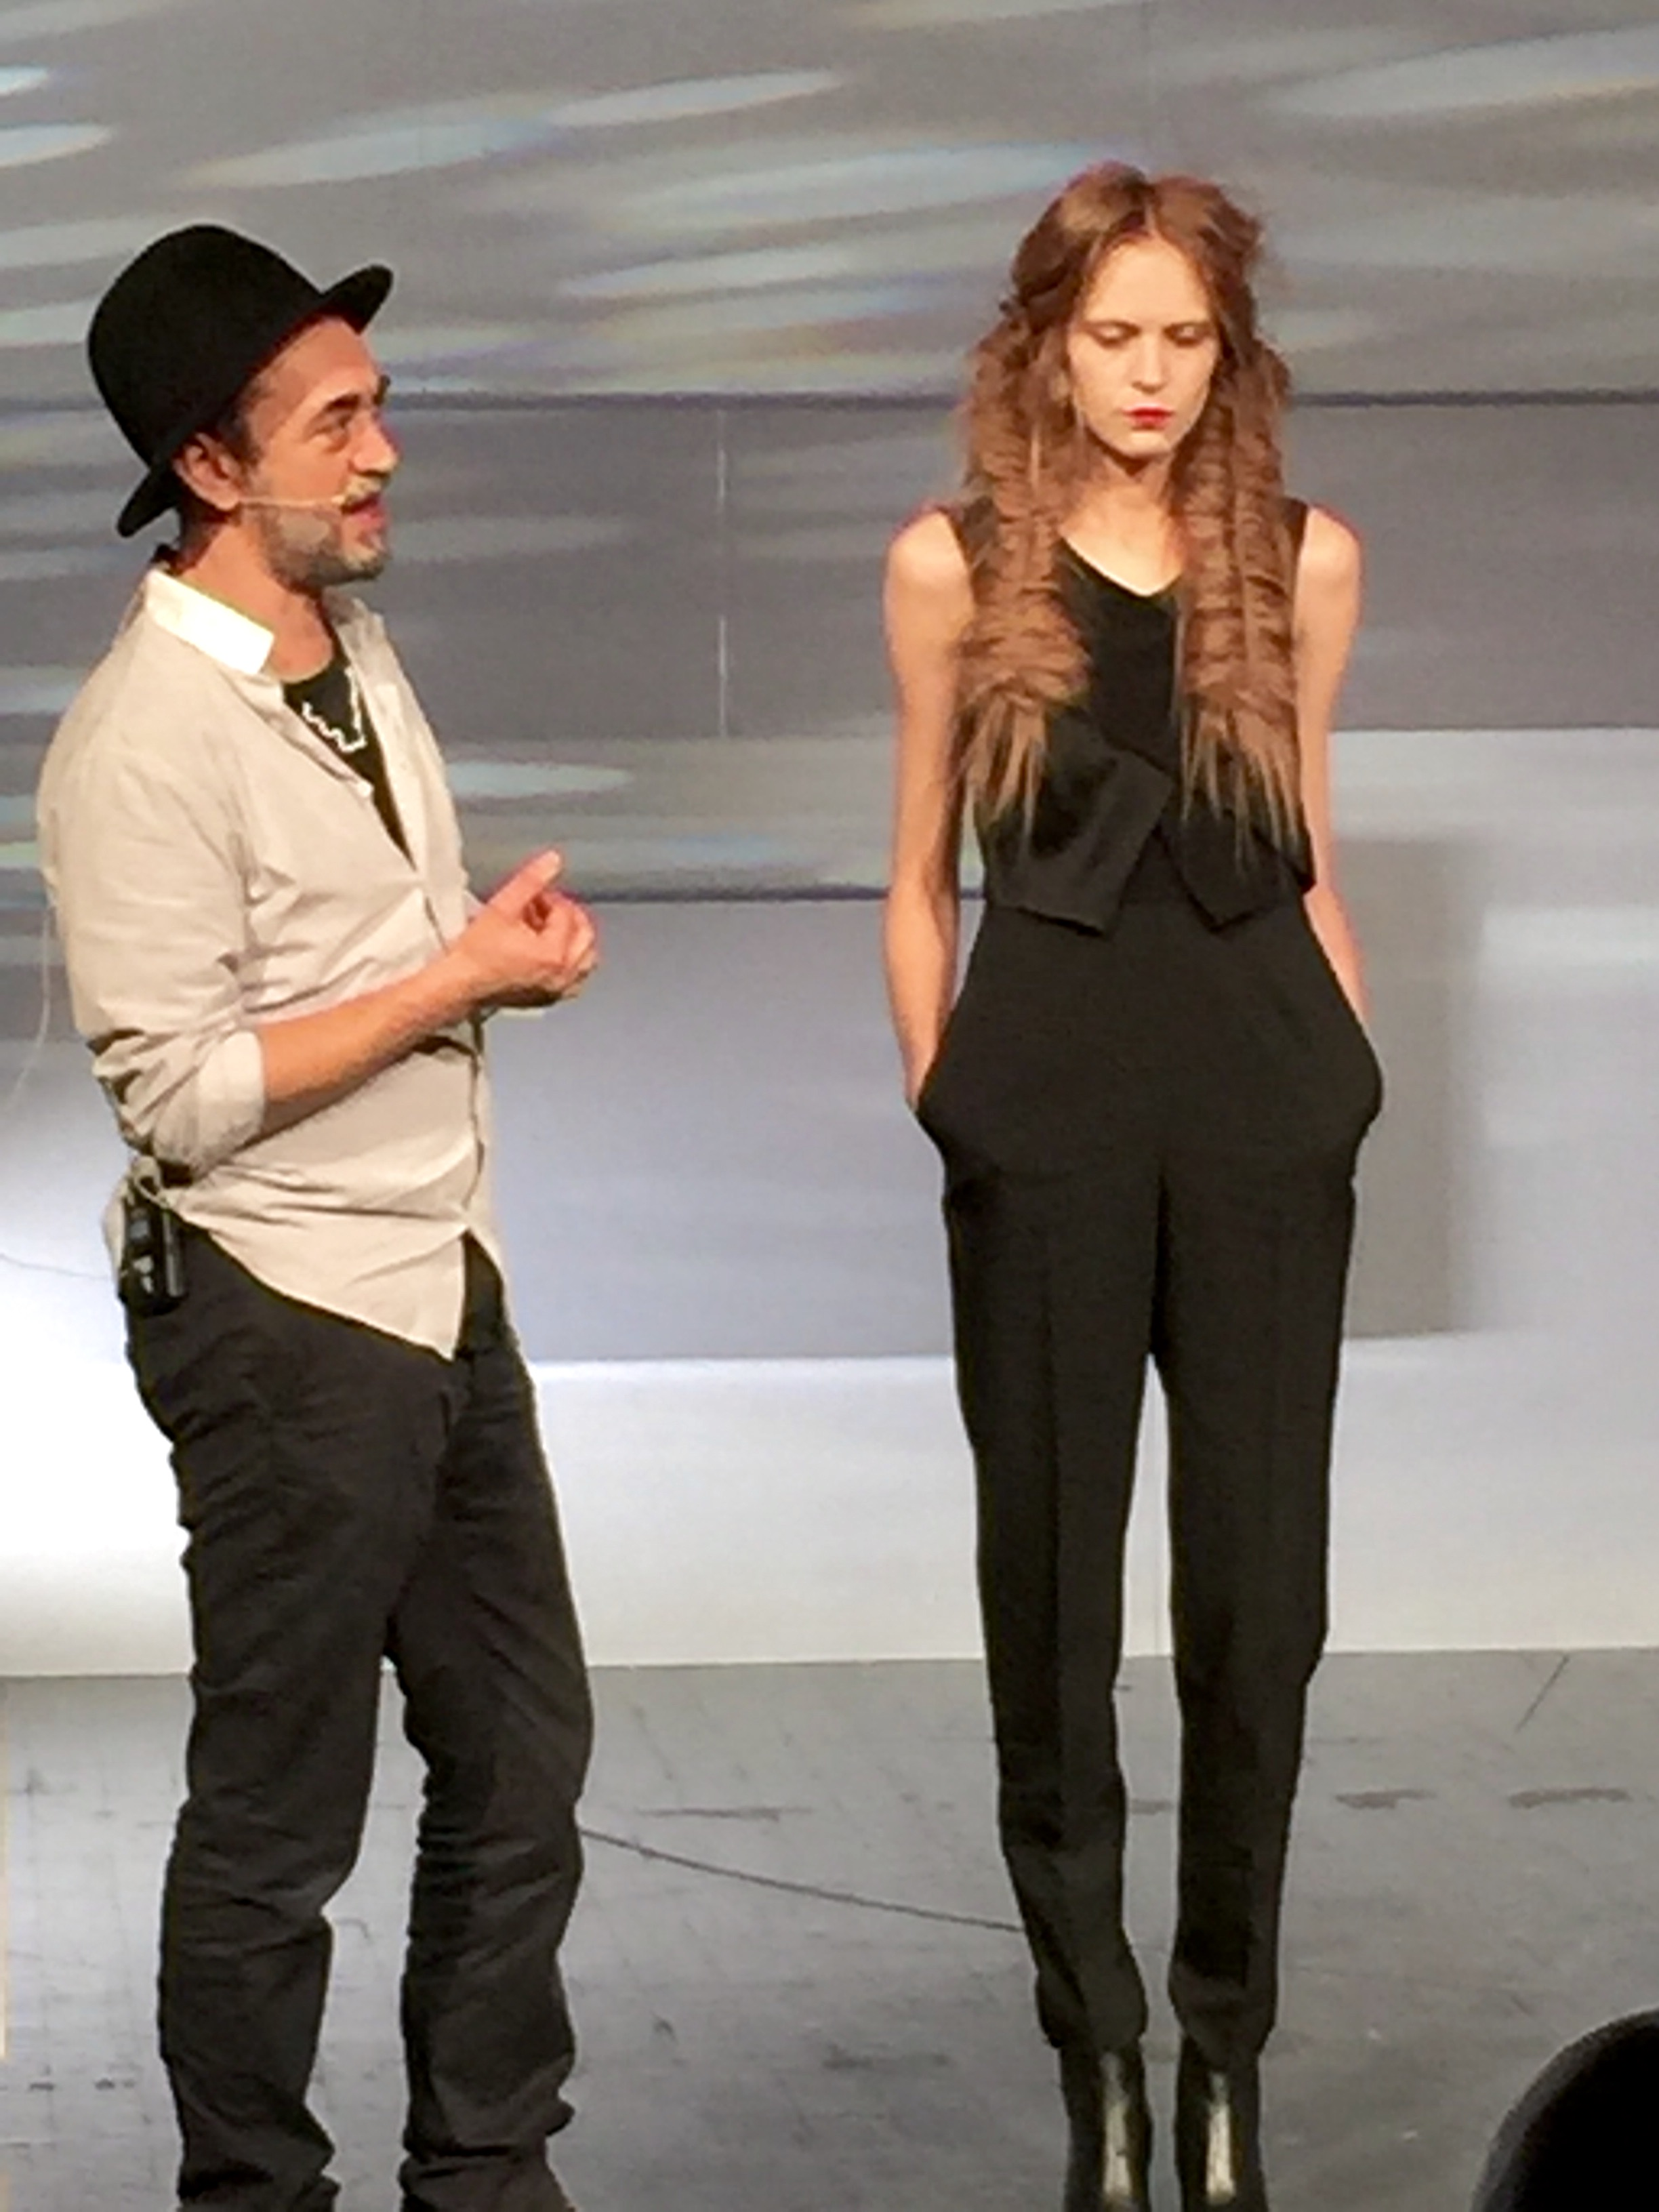 Wella's Eugene Souleiman talks about one of his favorite fashion creations.